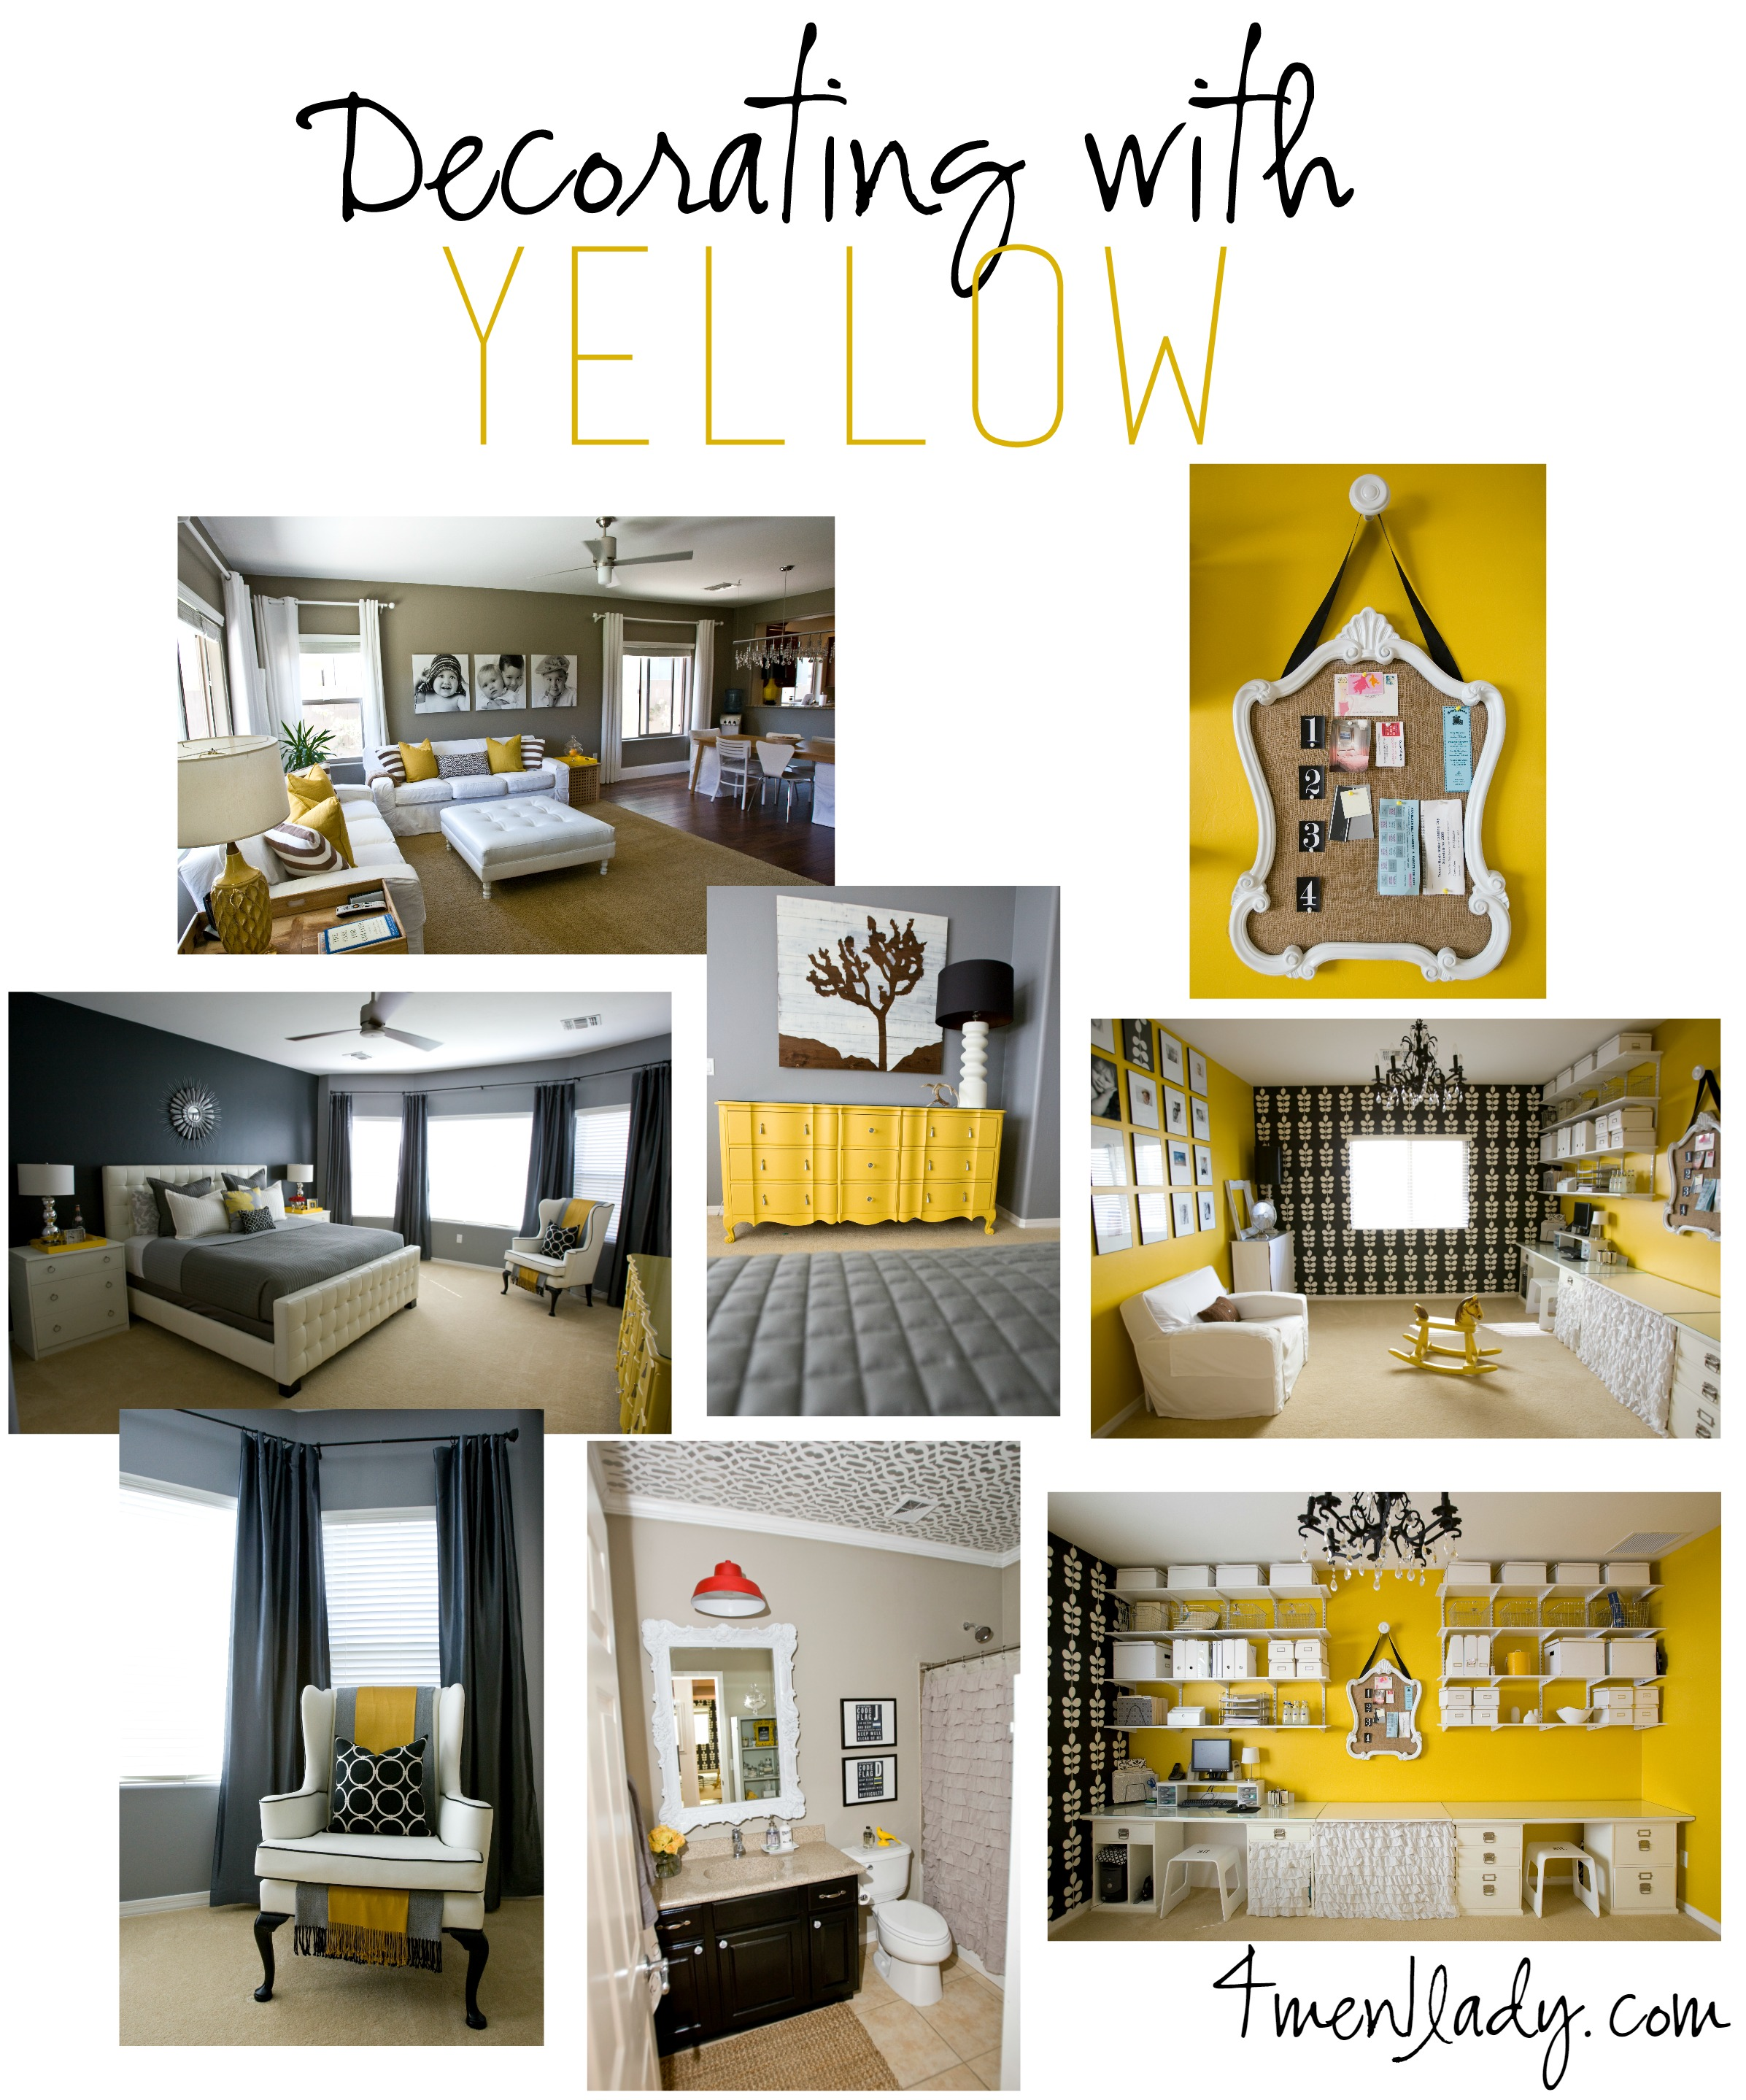 Decoratin with yellow by 4men1lady